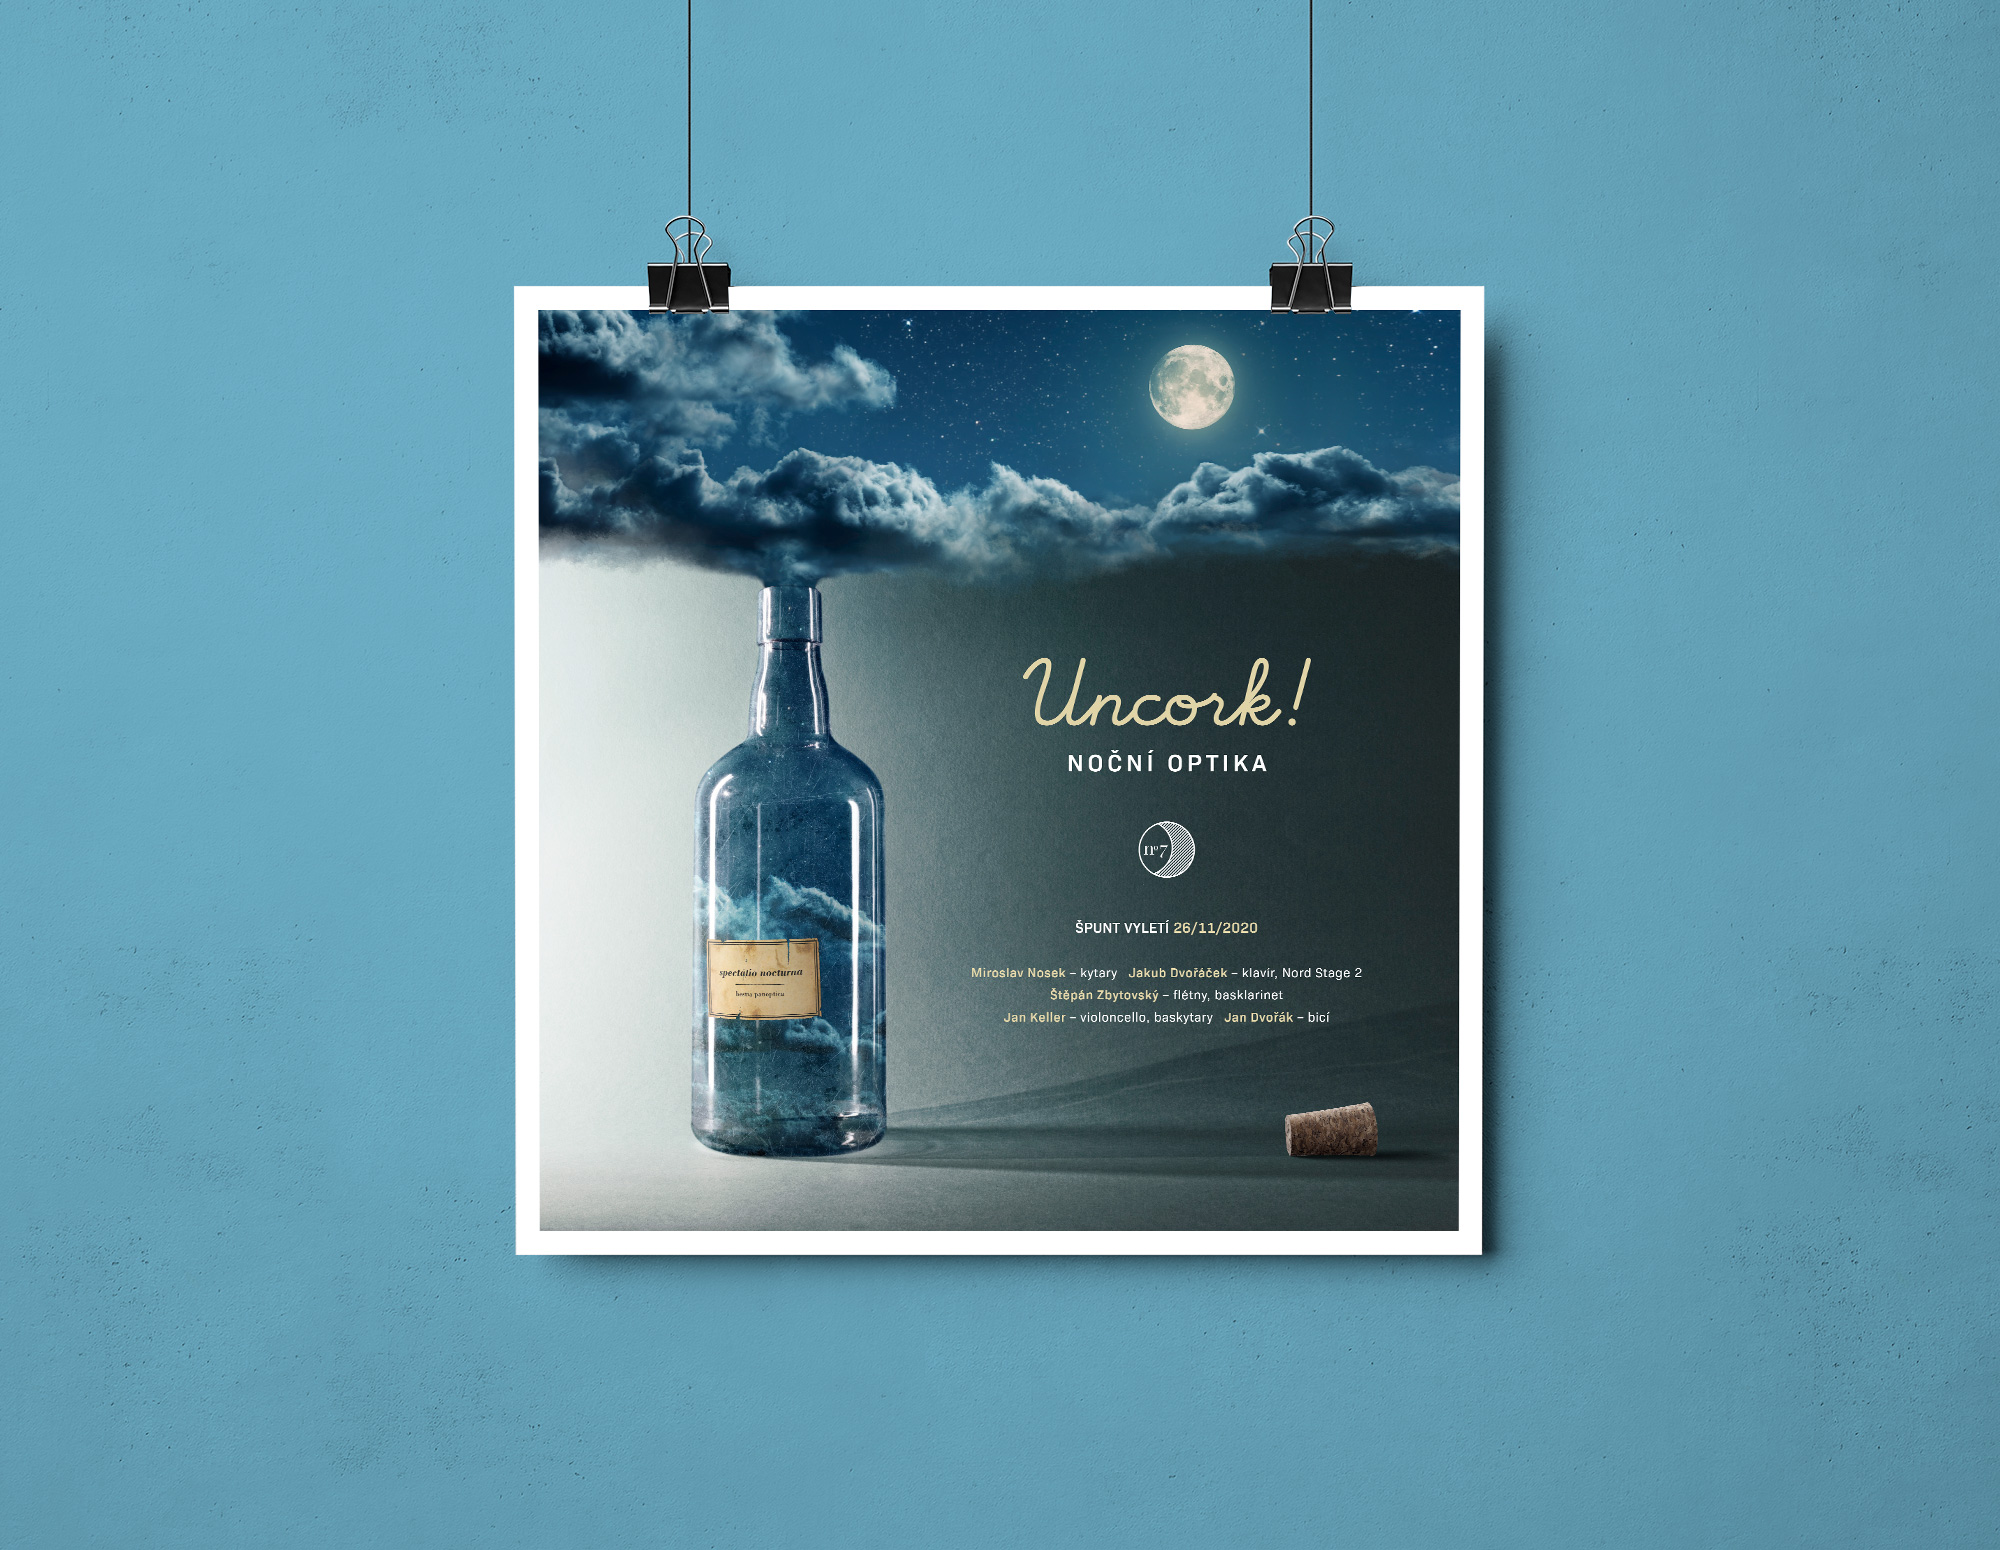 [album/Products_Model_Product/122/NO_plakat_Uncork.jpg]